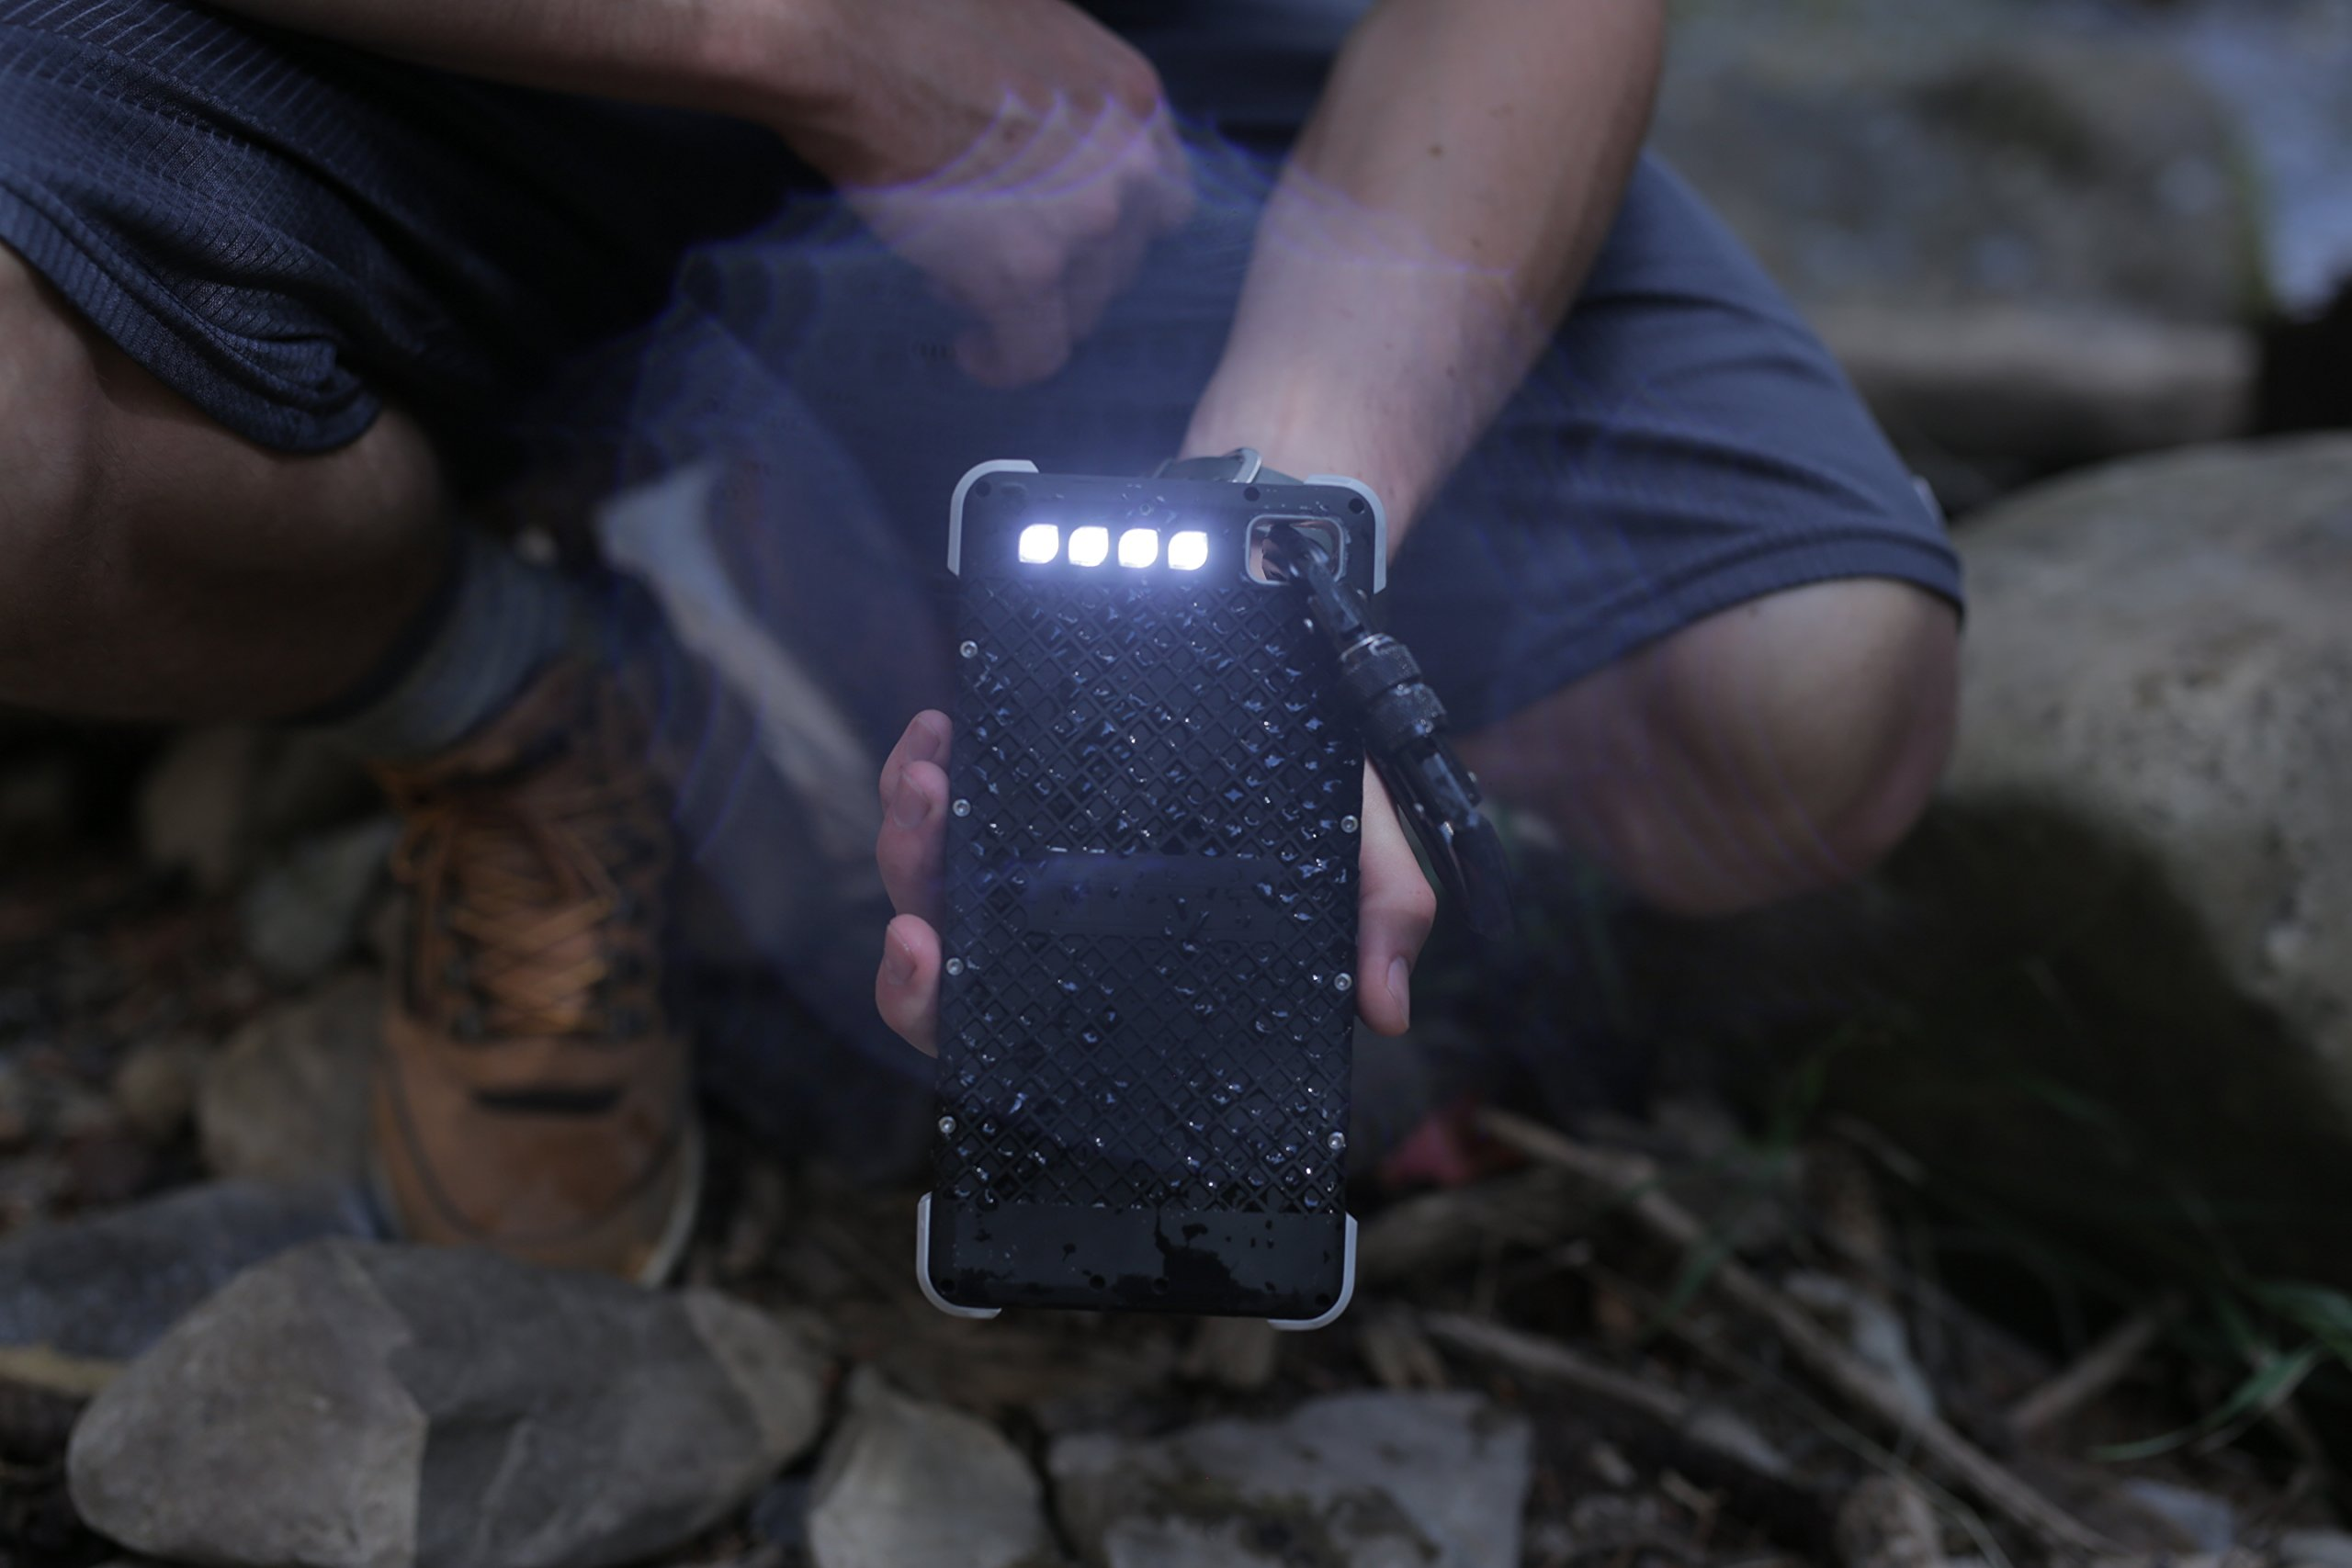 SOS20K - 20,000 mAh Rugged Solar Charger with Flashlight, IP67 Waterproof Solar Camping Battery & 4 Port USB Fast Charging Powerbank, by RoamProof by RoamProof (Image #6)